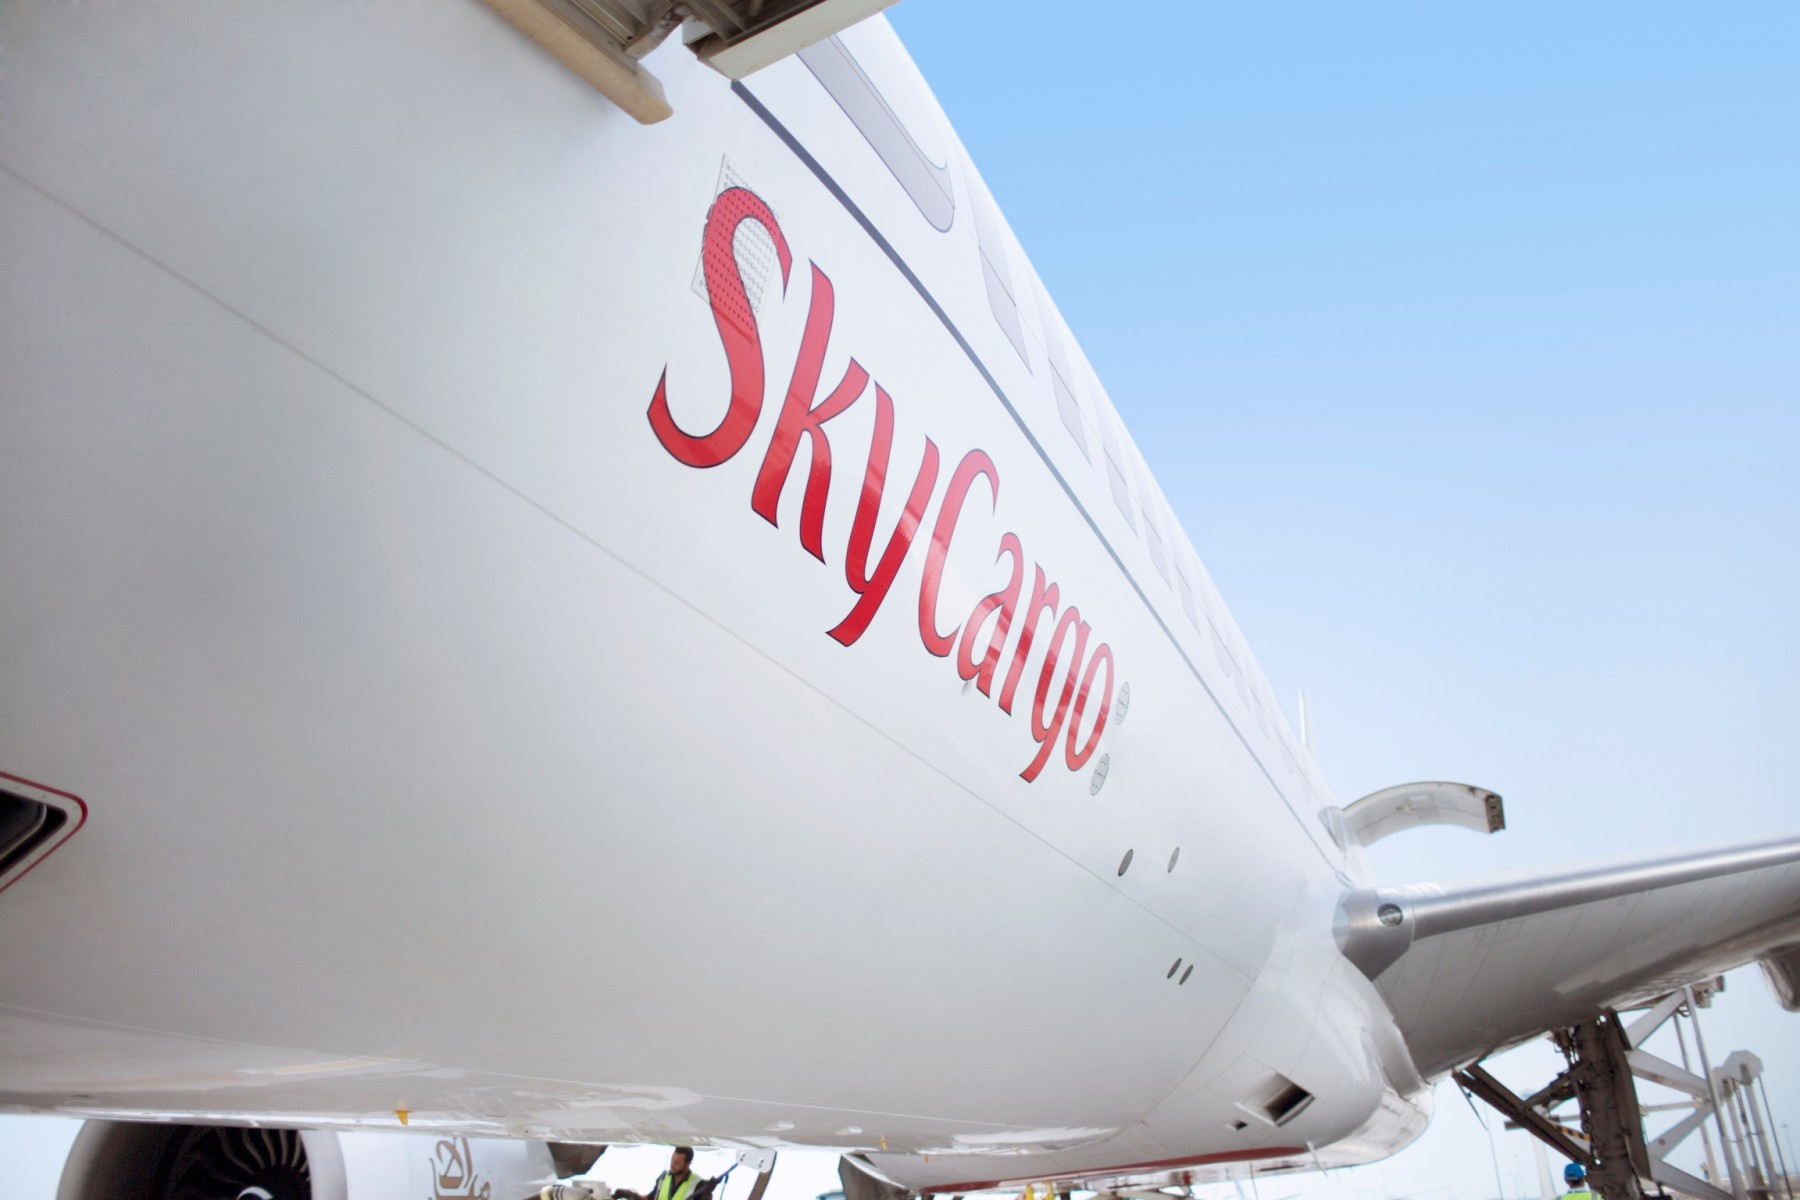 Emirates SkyCargo completes five years of operations to Columbus, Ohio